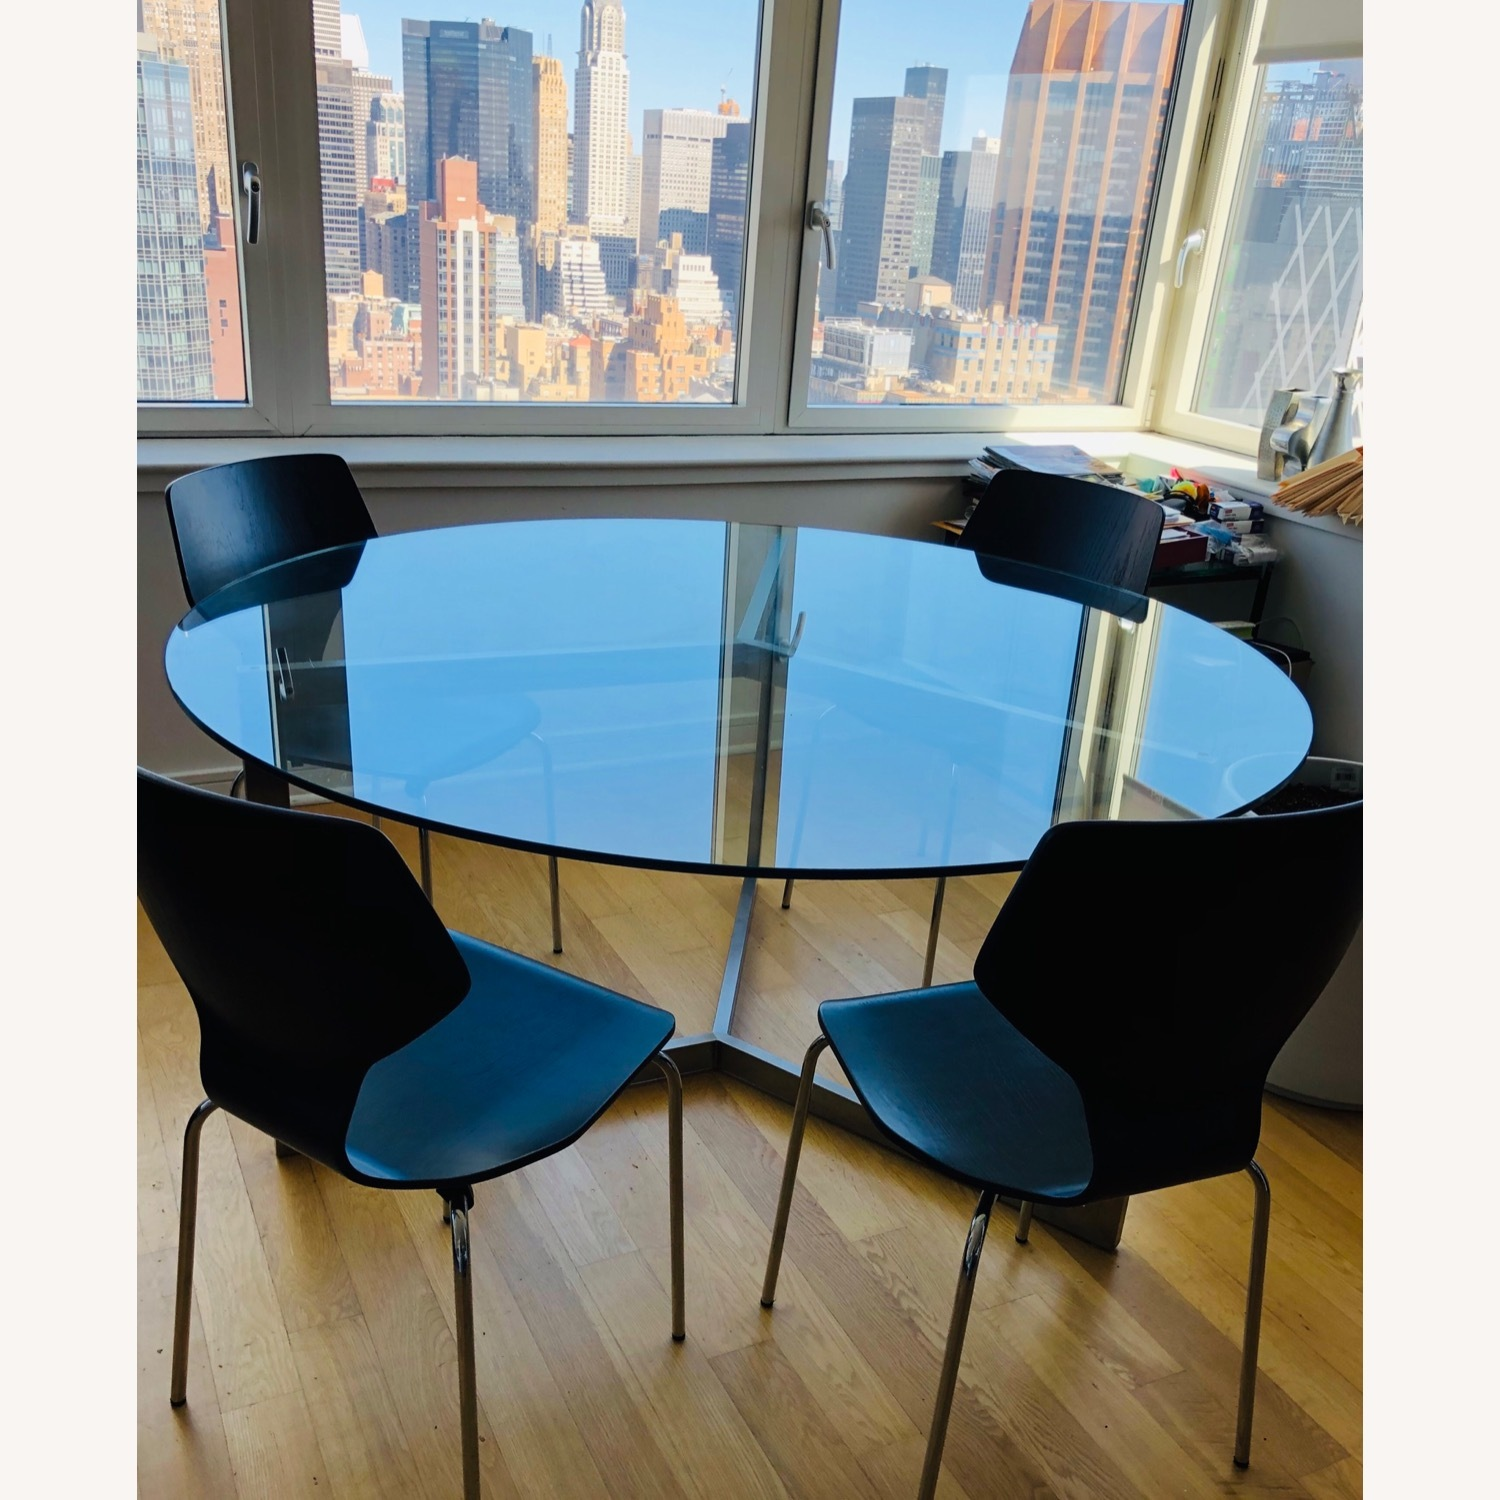 Room & Board Glass Dining Table - image-1